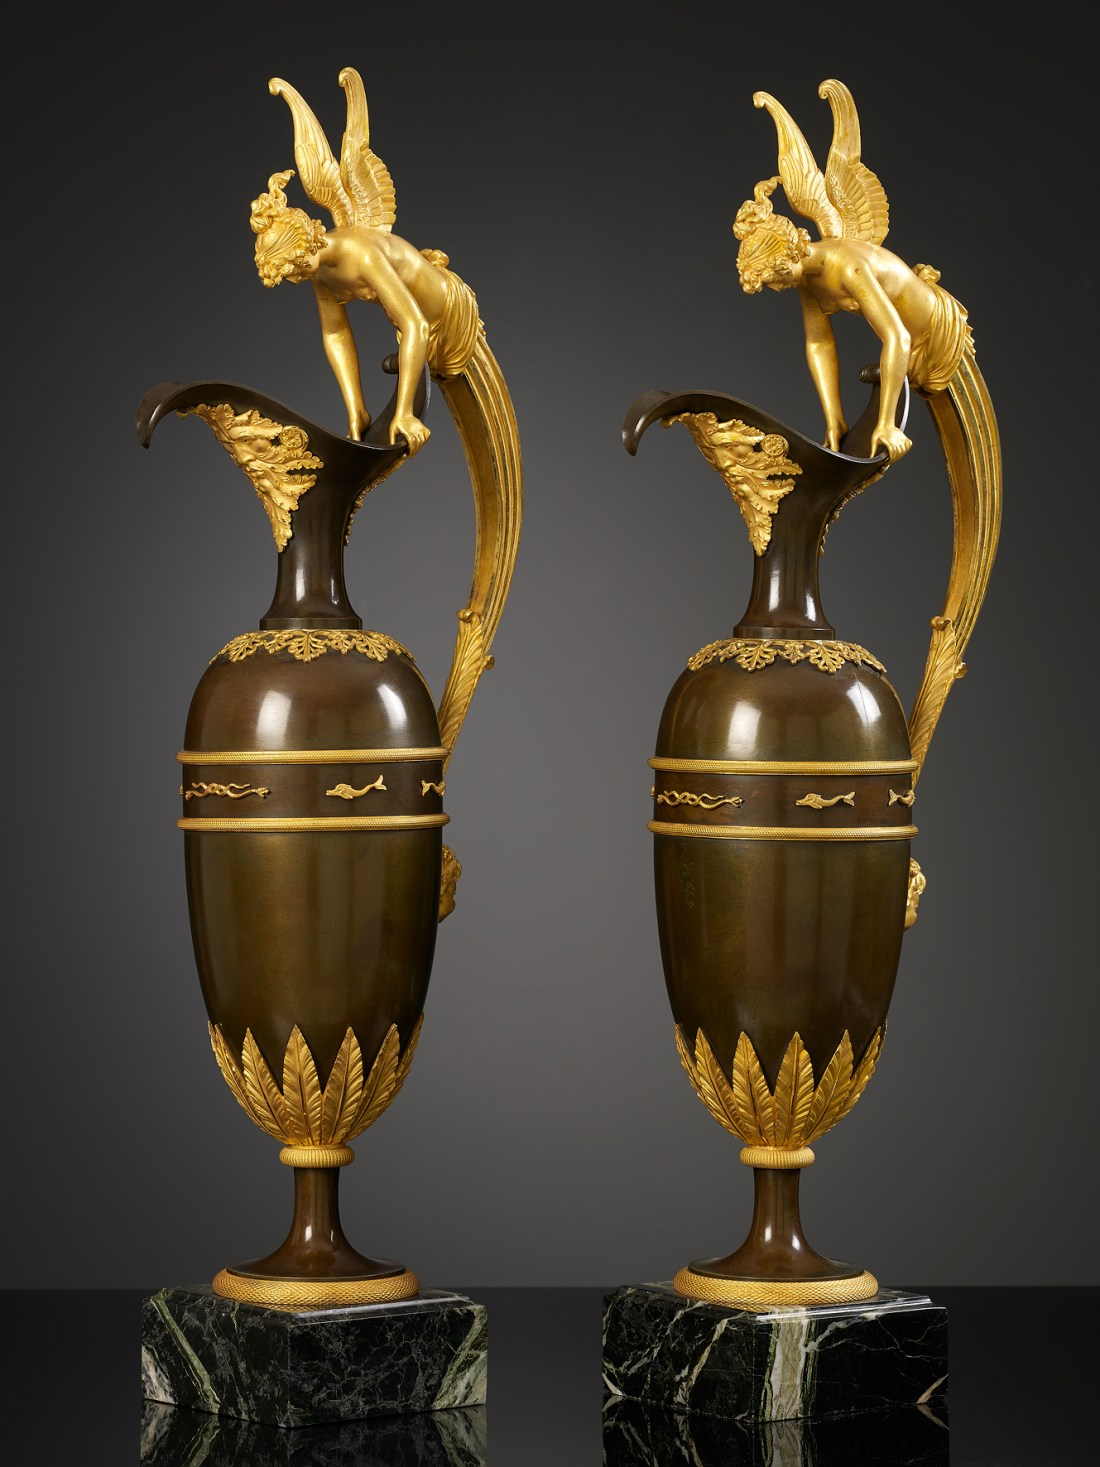 Pair of large ewers. No exact date. Empire in style.